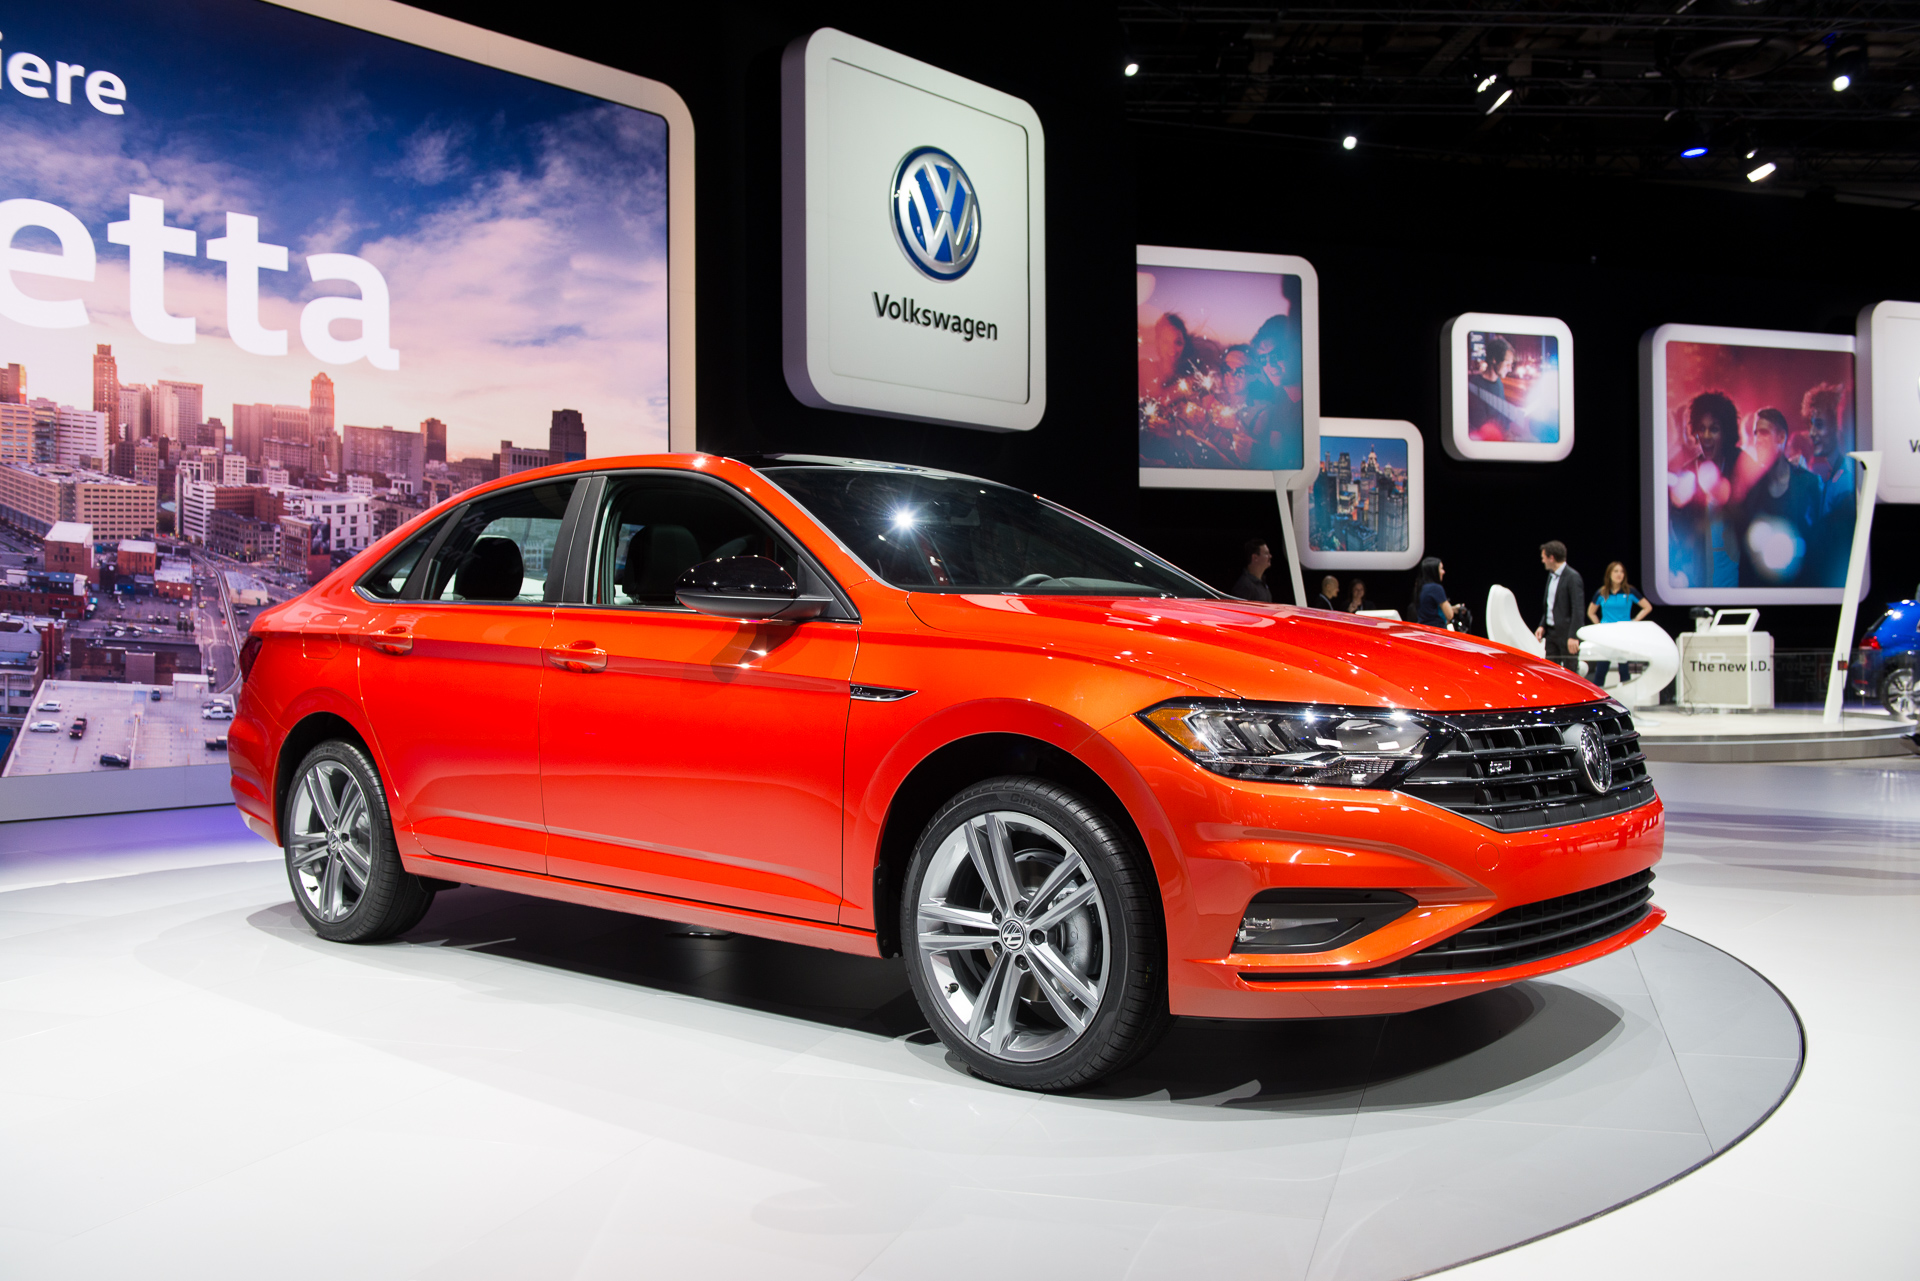 2019 VW Jetta, Detroit show wrap-up, Ram 48-volt: What's ...